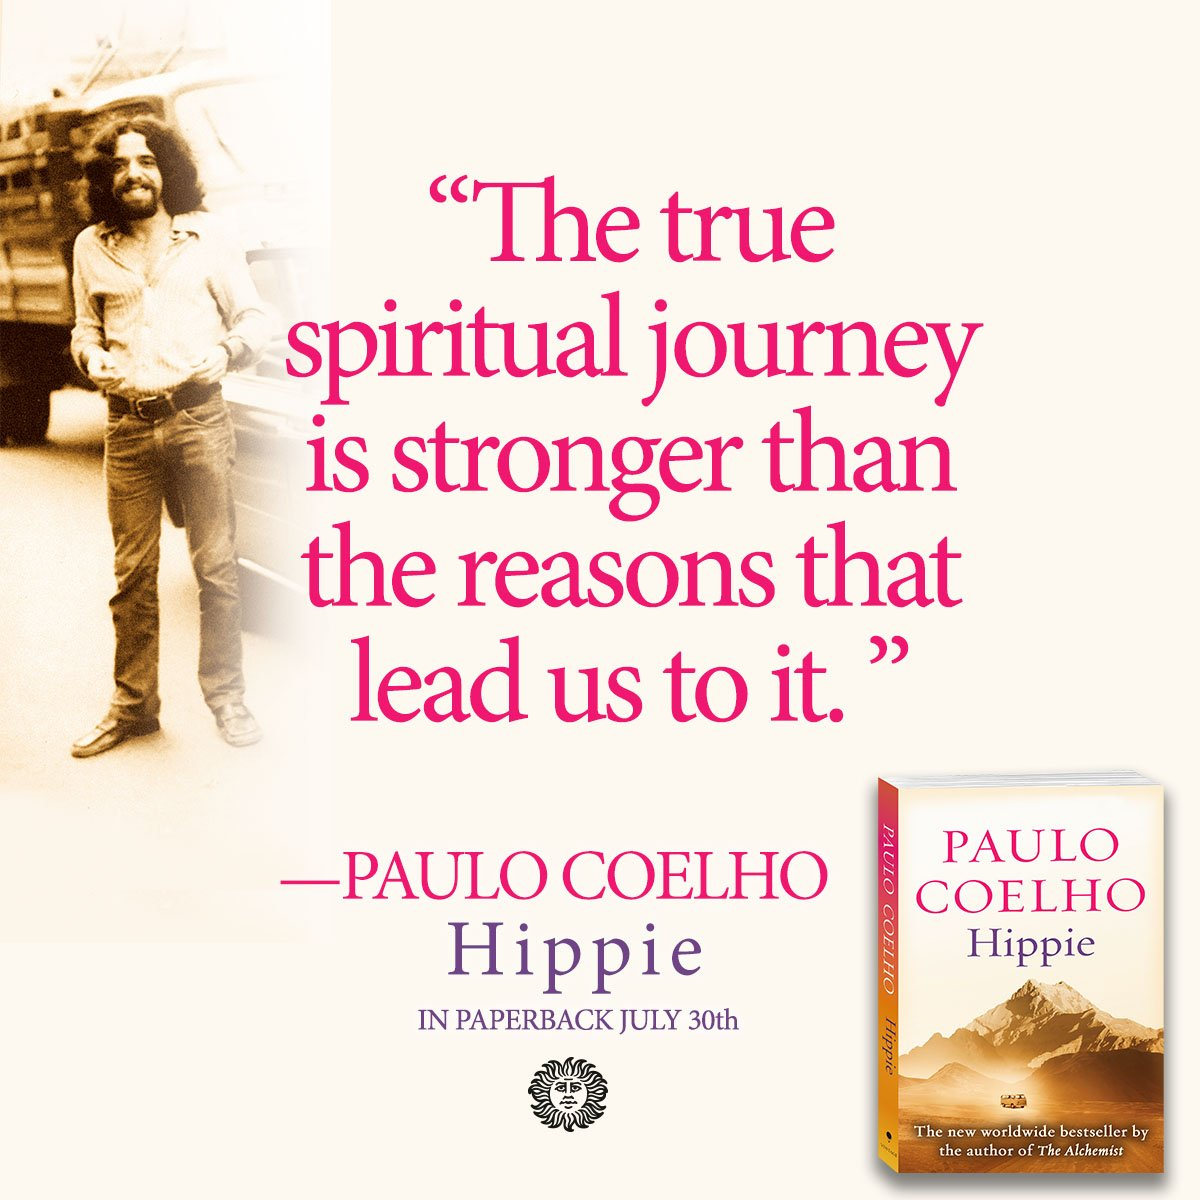 HIPPIE by @paulocoelho is out now in paperback—the perfect read for this years 50th Anniversary of Woodstock! #TheSummerOfLove ow.ly/KZwM50vyGbk